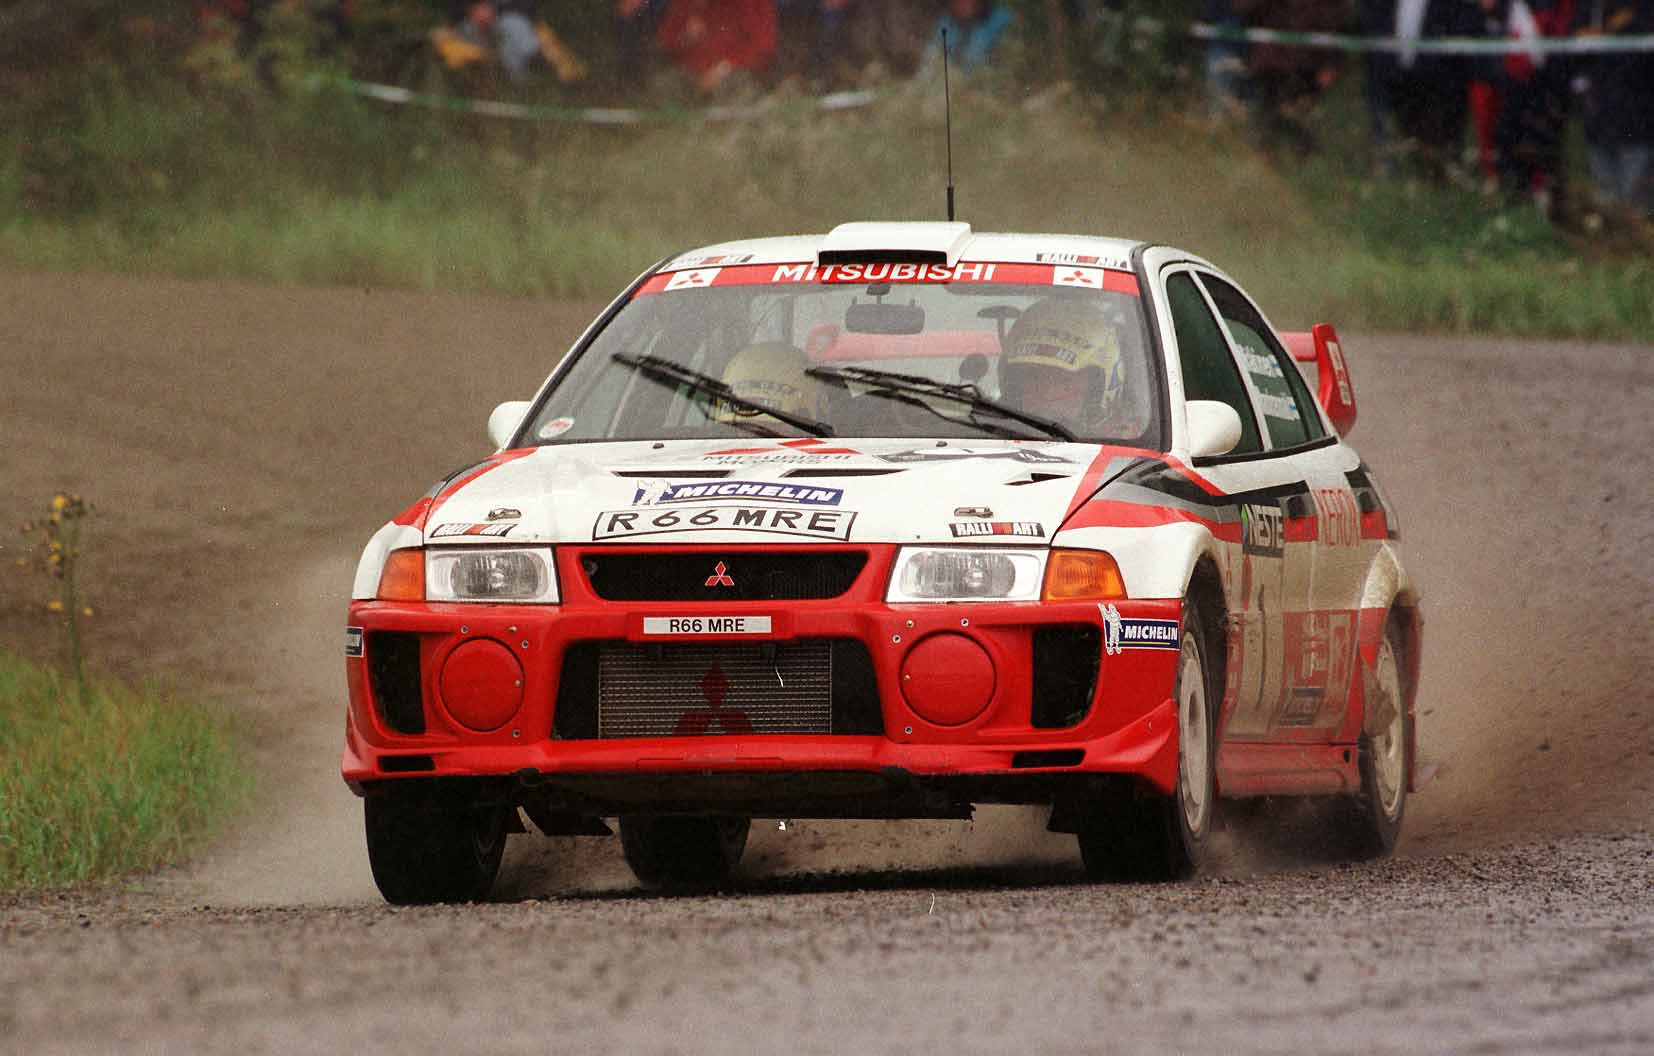 Mitsubishi Lancer Evo IV and V or how a group A car could beat the WRC (Lancer Evo part II)